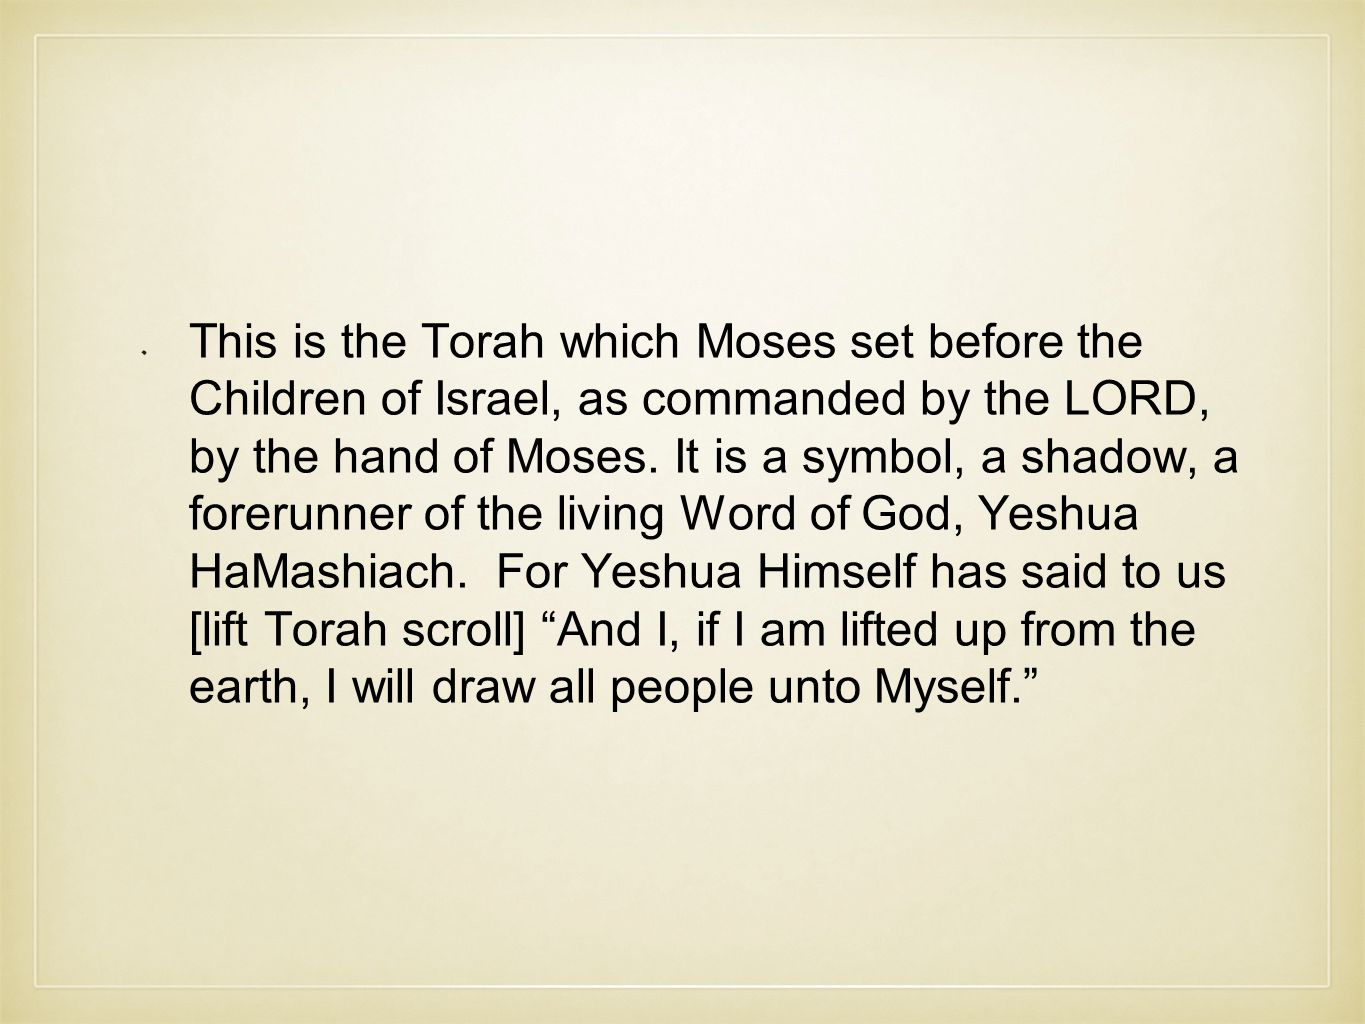 This is the Torah which Moses set before the Children of Israel, as commanded by the LORD, by the hand of Moses.